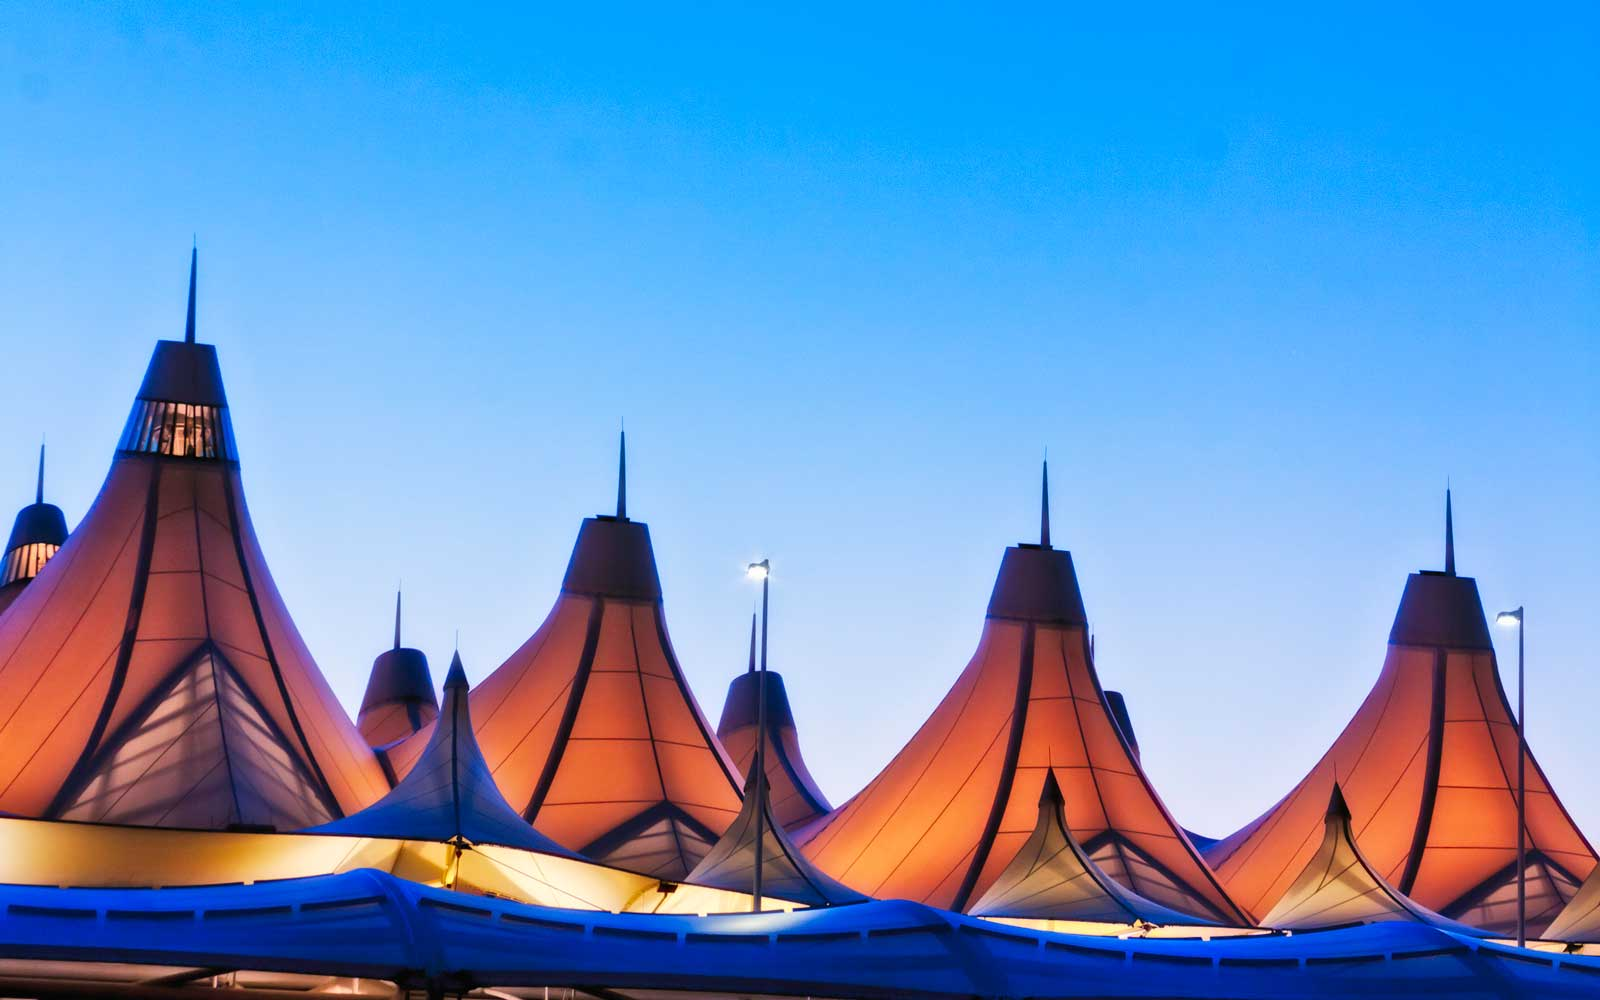 Denver International Airport lit during early morning blue hour